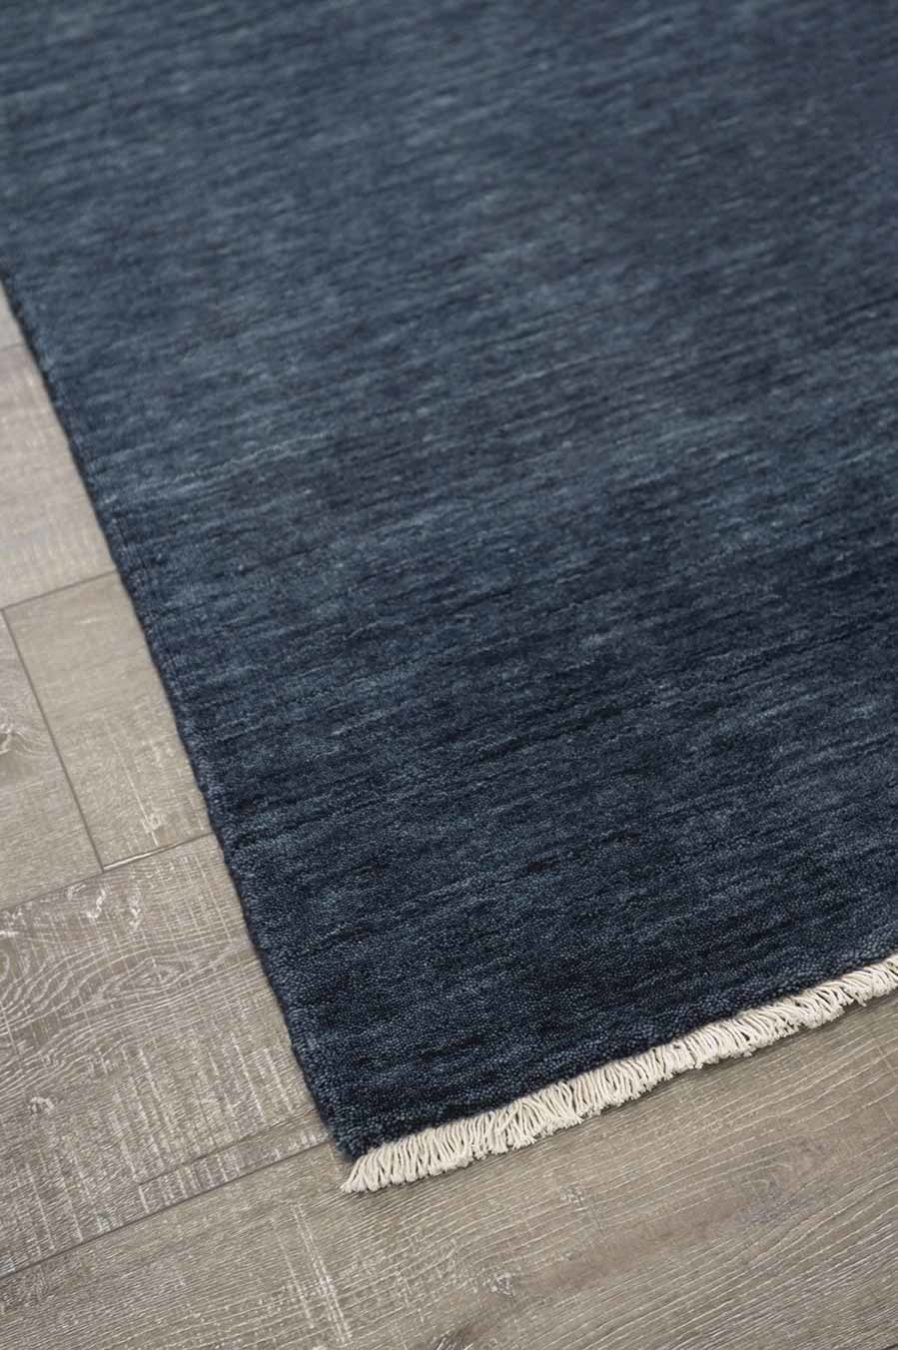 Detailed view of textured Zen rug in navy blue colour